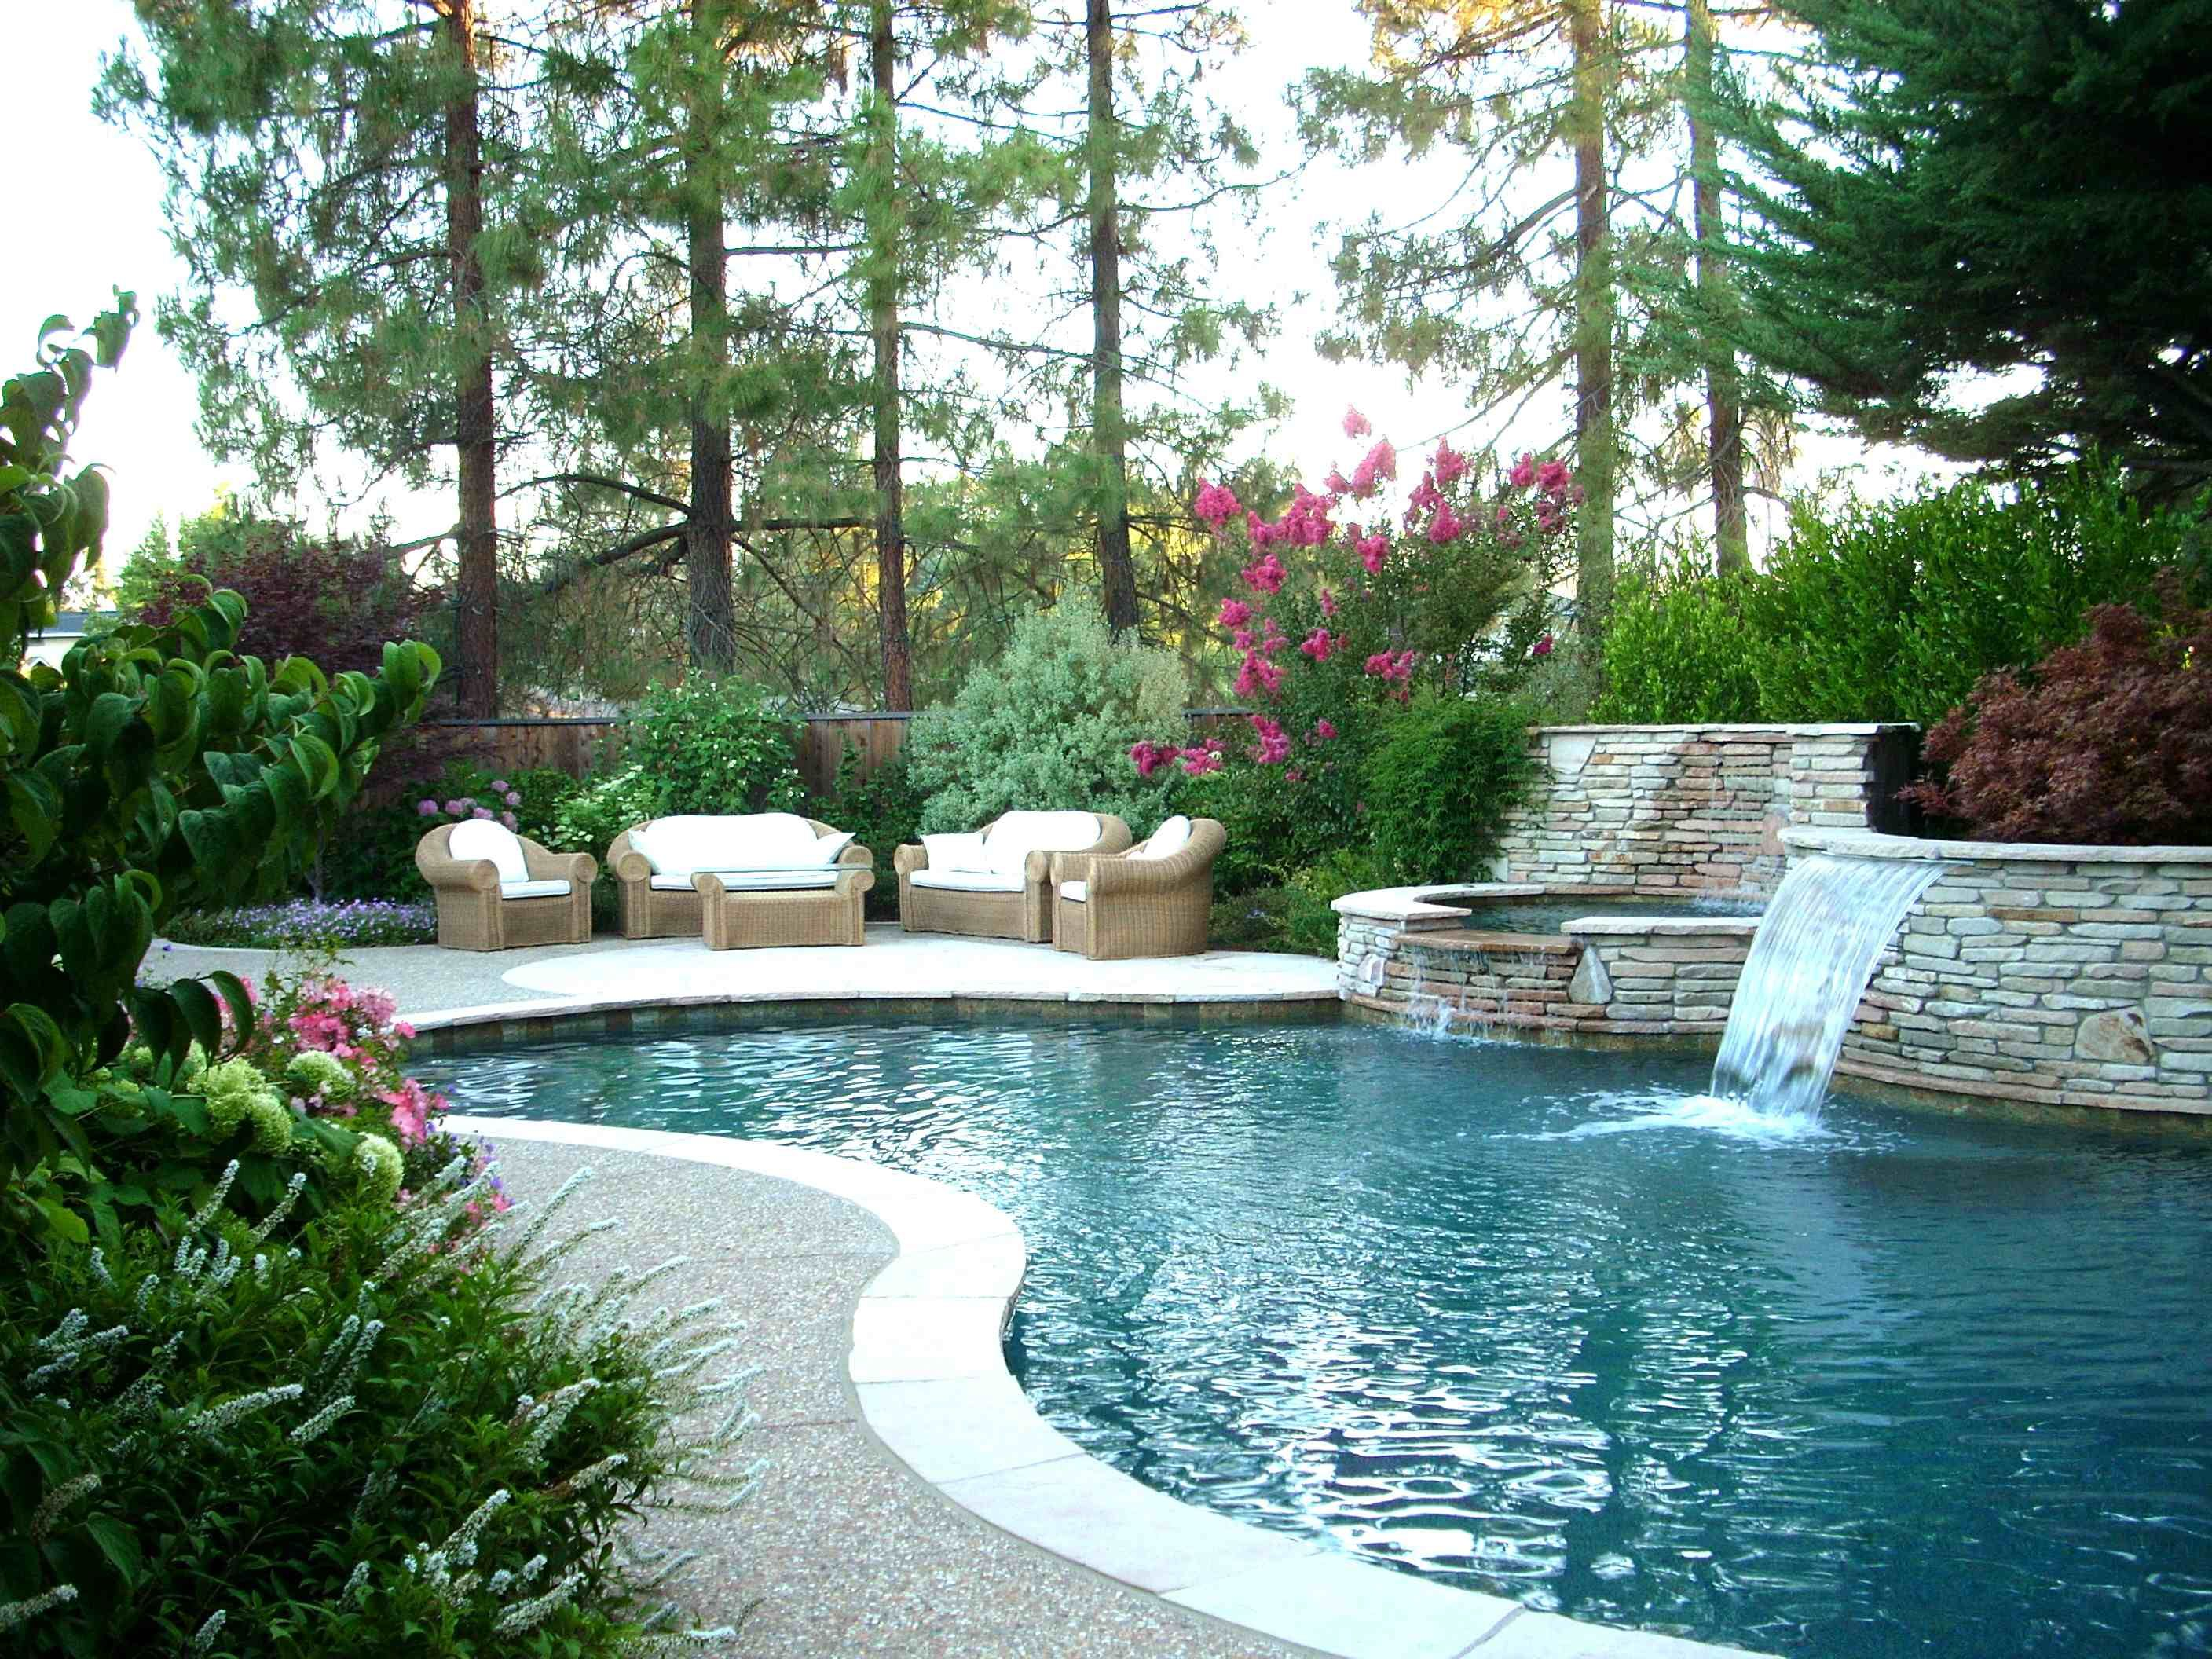 Landscaping Design Ideas natural stone retaining wall garden wall ideas modern landscape Landscaped Pool Pictureslandscape Design Ideas For Backyard